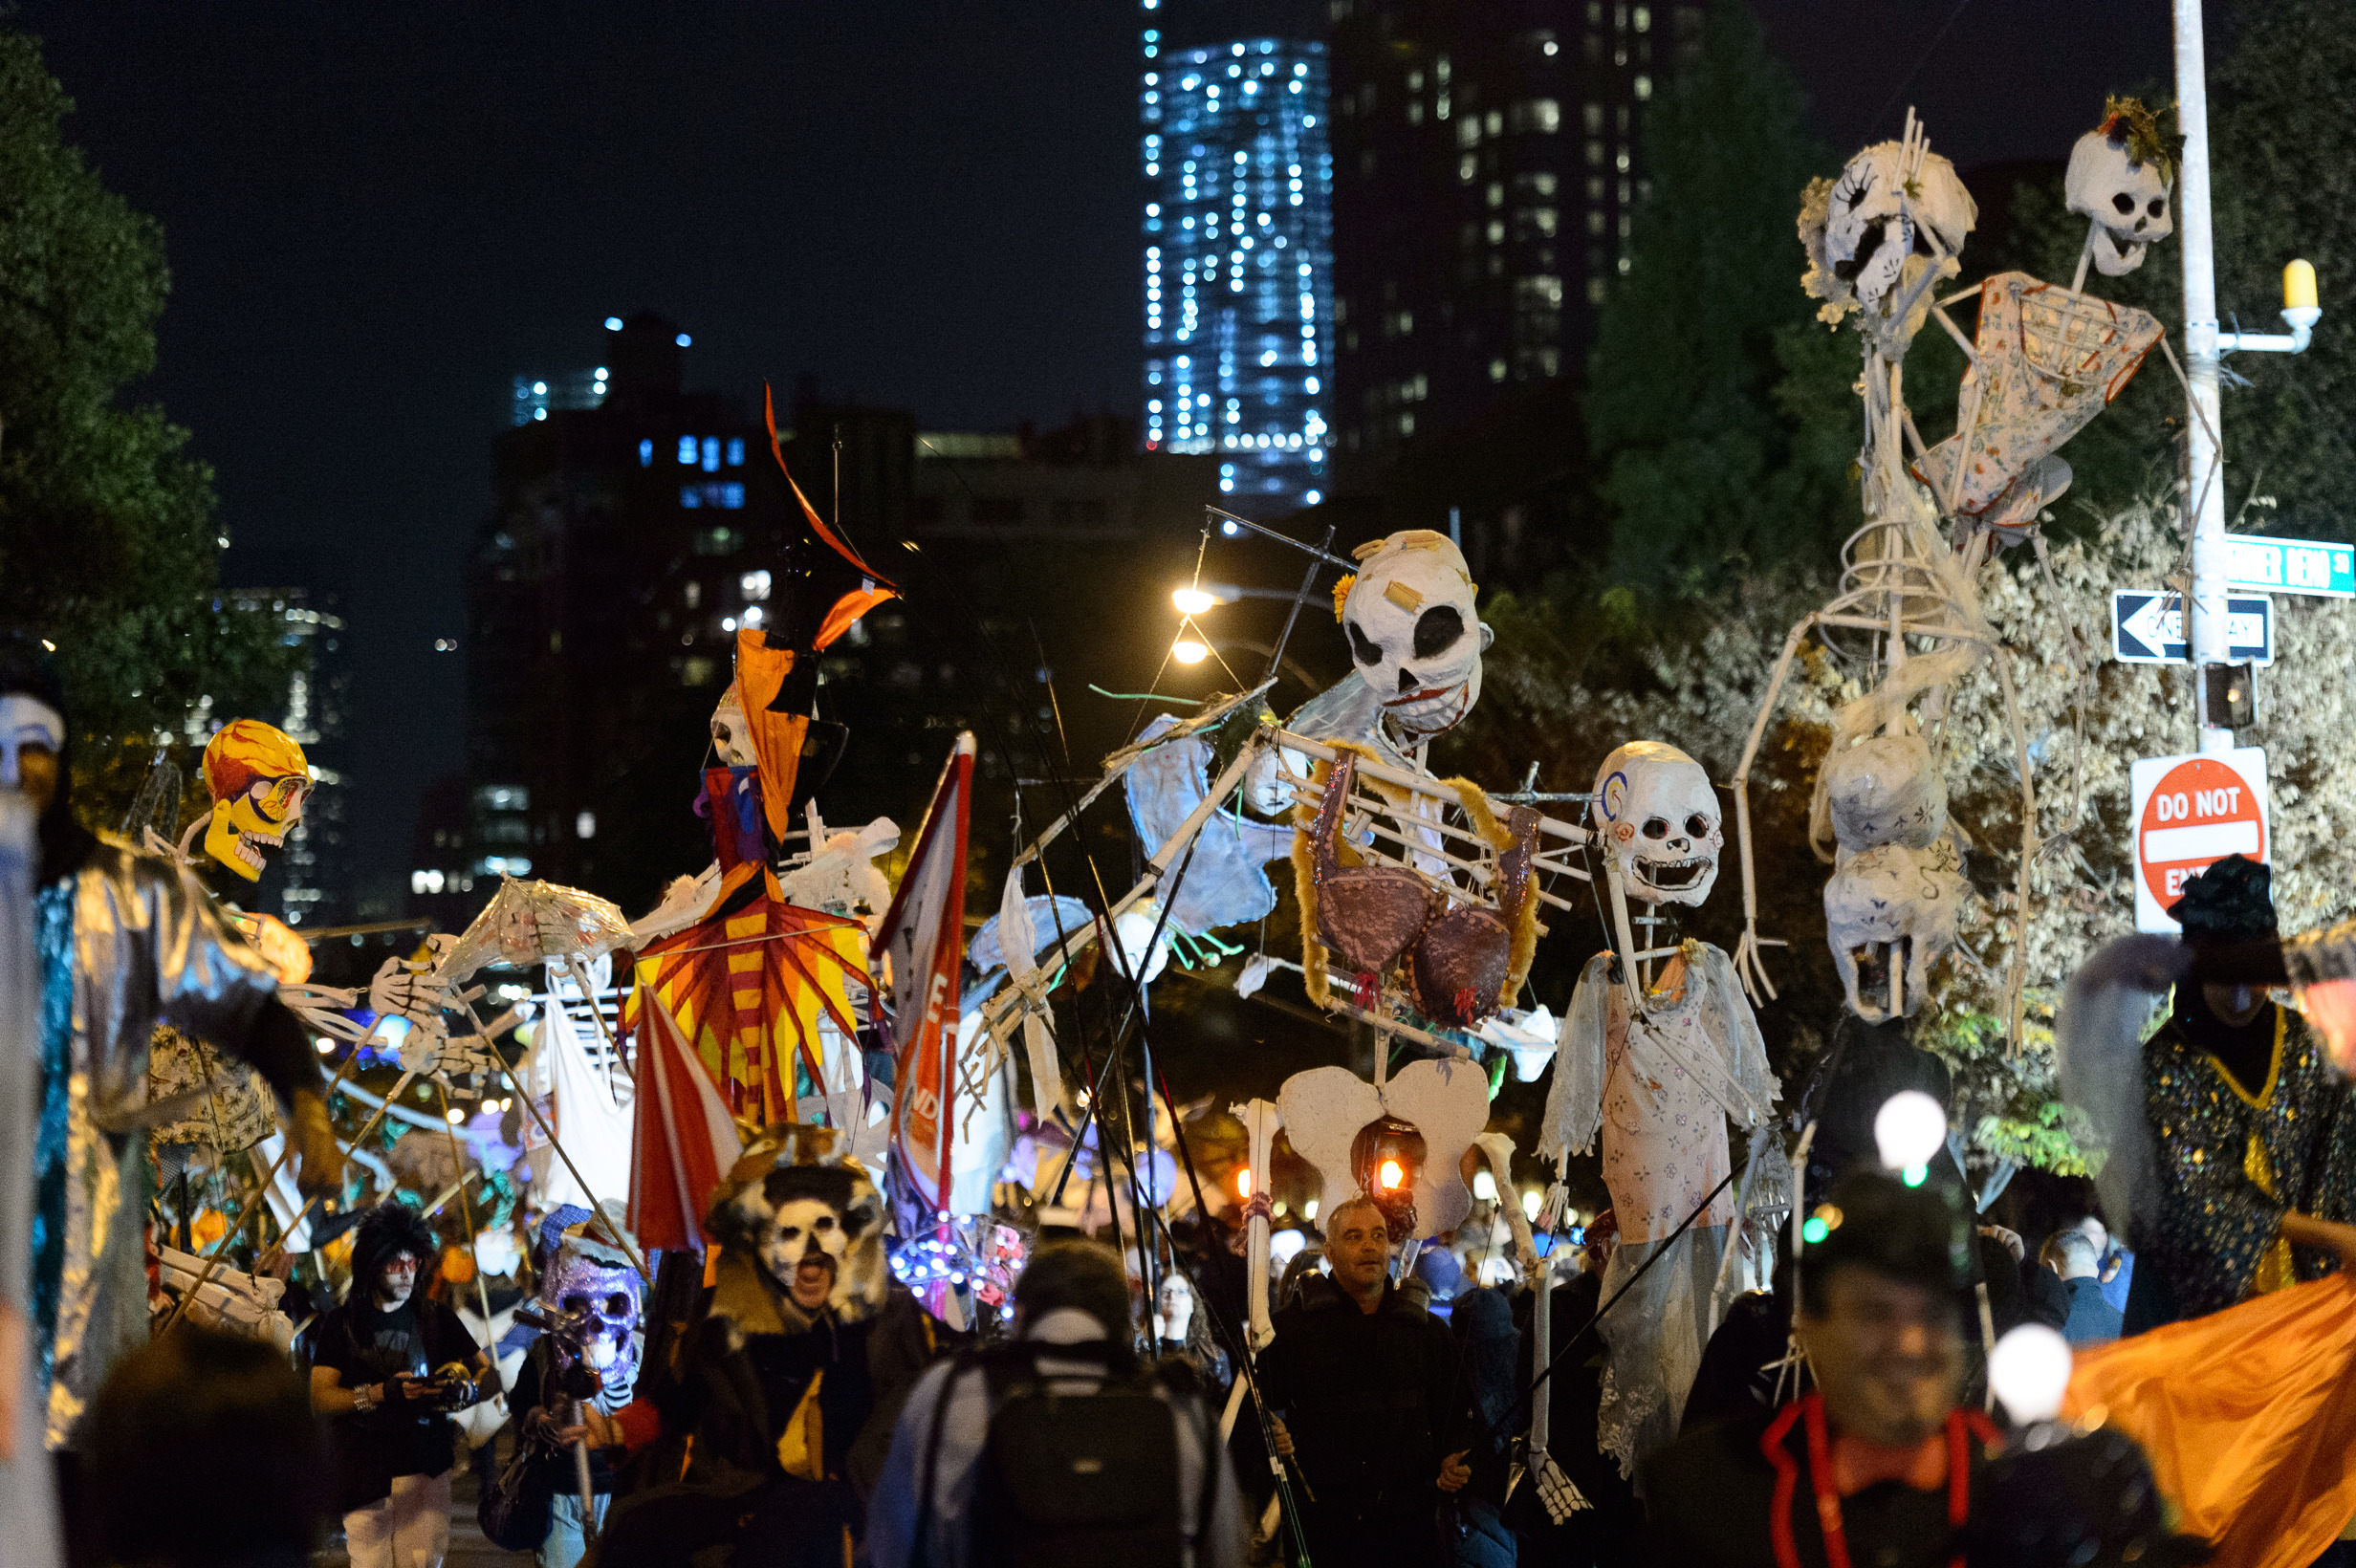 The Best Halloween Parties In Nyc 2020 Village Halloween Parade in NYC 2020